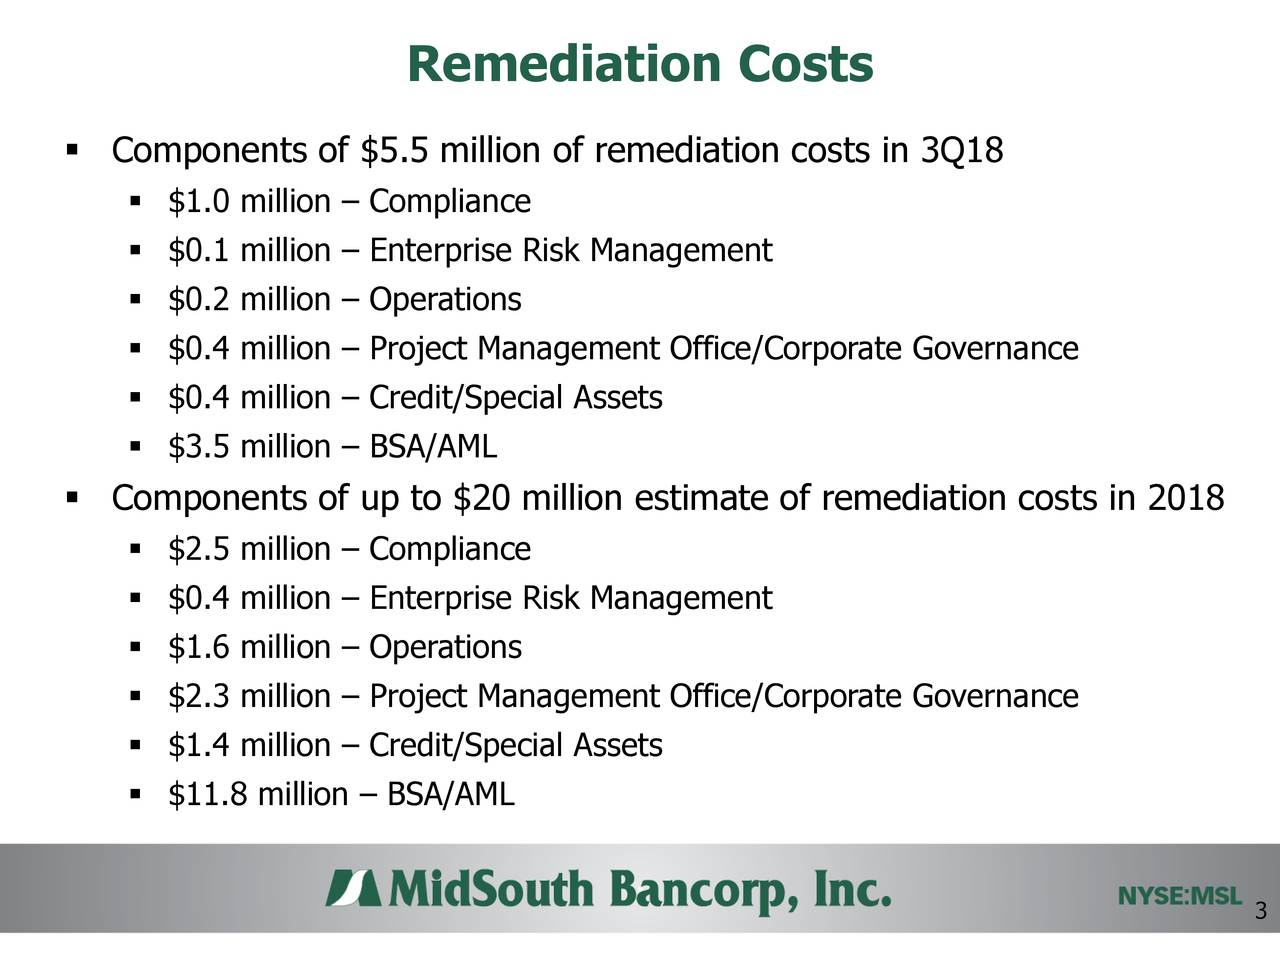 ▪ Components of $5.5 million of remediation costs in 3Q18 ▪ $1.0 million – Compliance ▪ $0.1 million – Enterprise Risk Management ▪ $0.2 million – Operations ▪ $0.4 million – Project Management Office/Corporate Governance ▪ $0.4 million – Credit/Special Assets ▪ $3.5 million – BSA/AML ▪ Components of up to $20 million estimate of remediation costs in 2018 ▪ $2.5 million – Compliance ▪ $0.4 million – Enterprise Risk Management ▪ $1.6 million – Operations ▪ $2.3 million – Project Management Office/Corporate Governance ▪ $1.4 million – Credit/Special Assets ▪ $11.8 million – BSA/AML 3